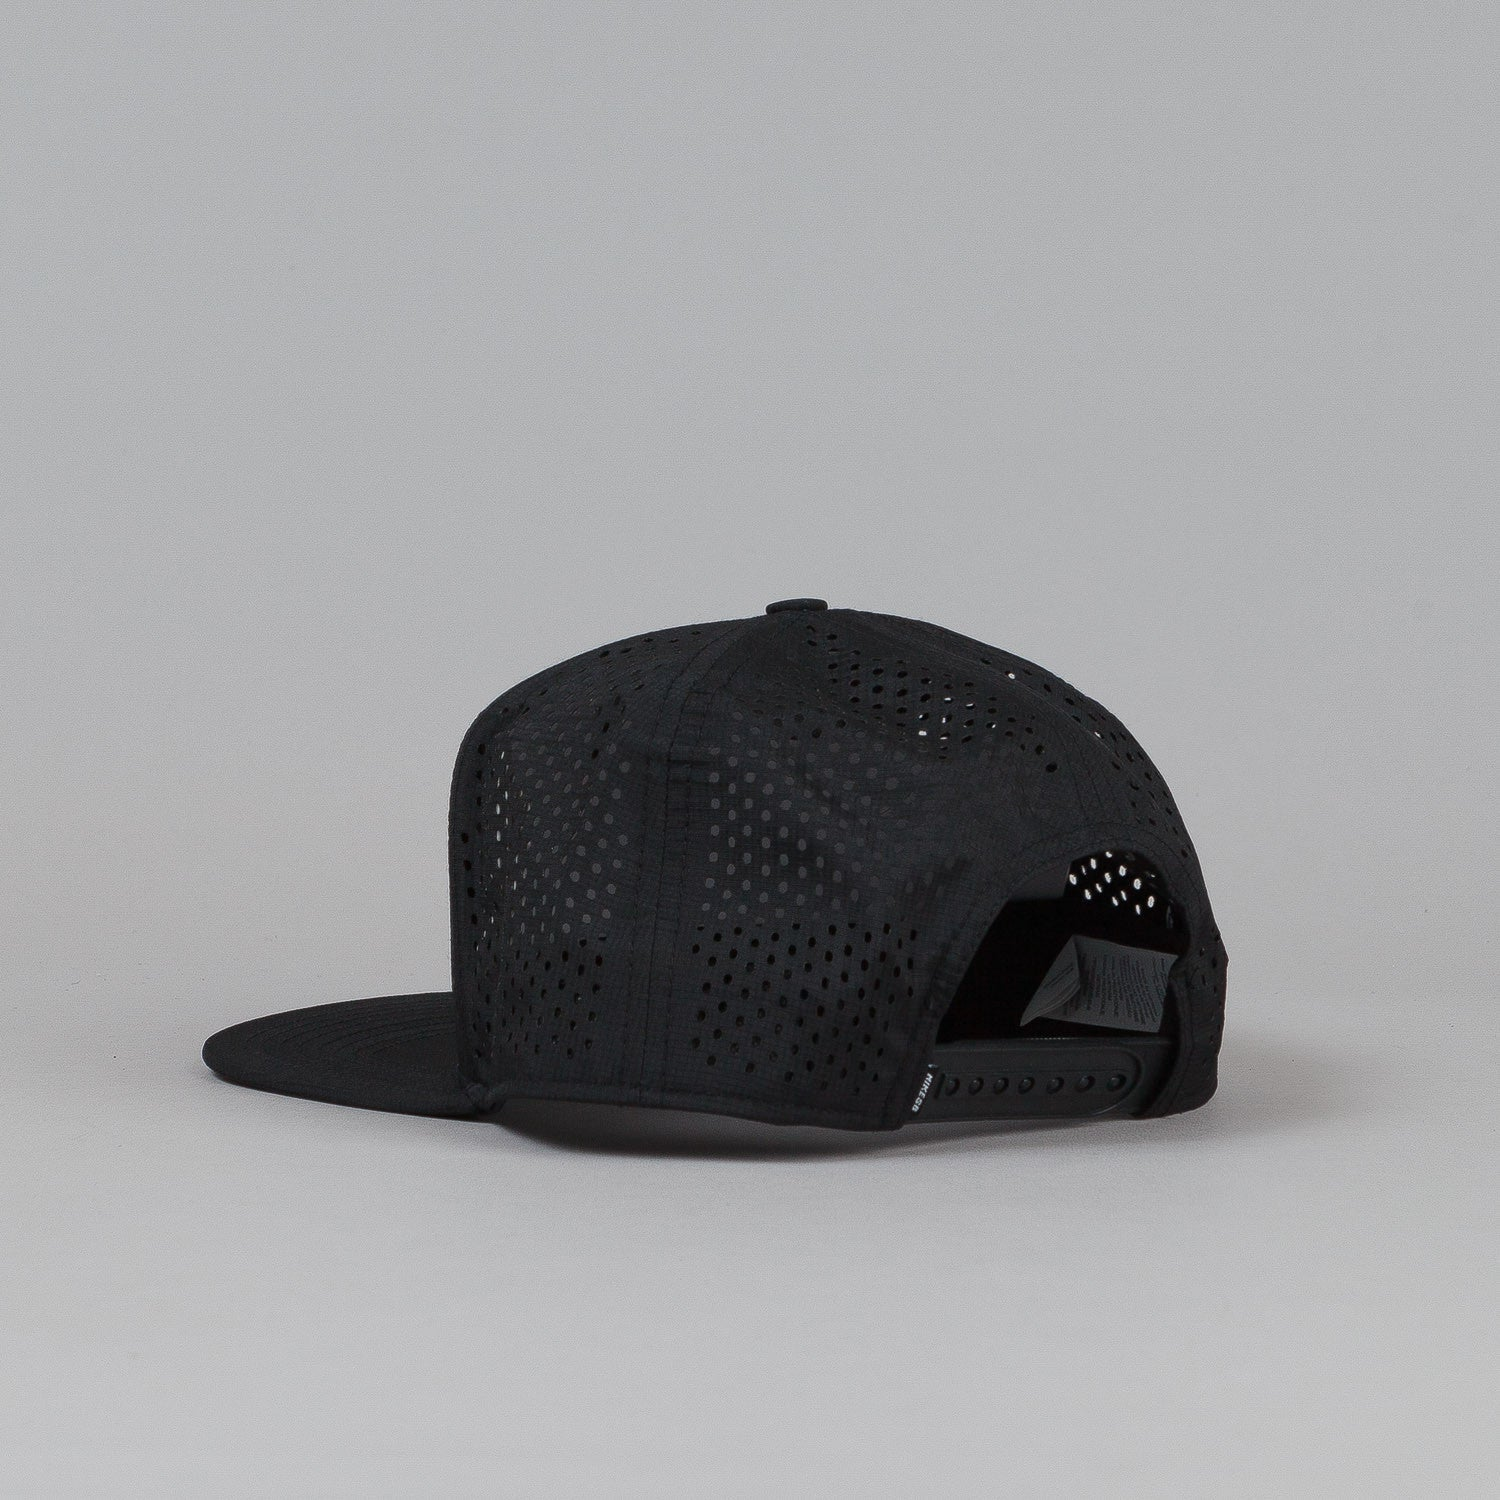 Nike SB Performance Trucker Cap - Black / White